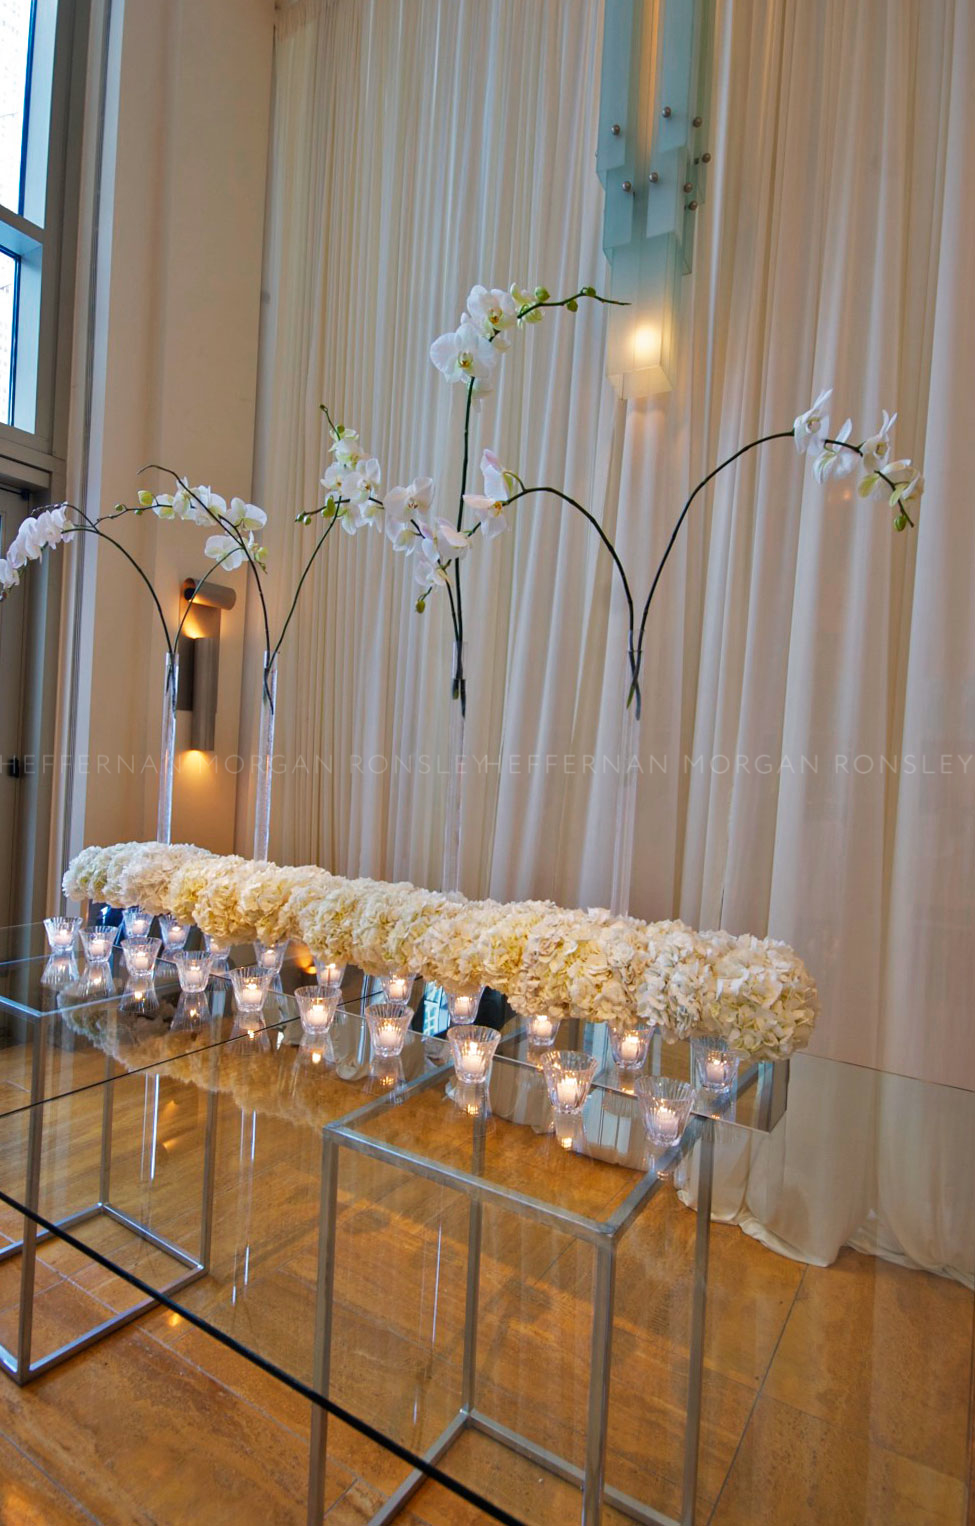 A chic and elegant placecard table display at 2007's Evening of Bridal Luxury at the Peninsula Chicago.